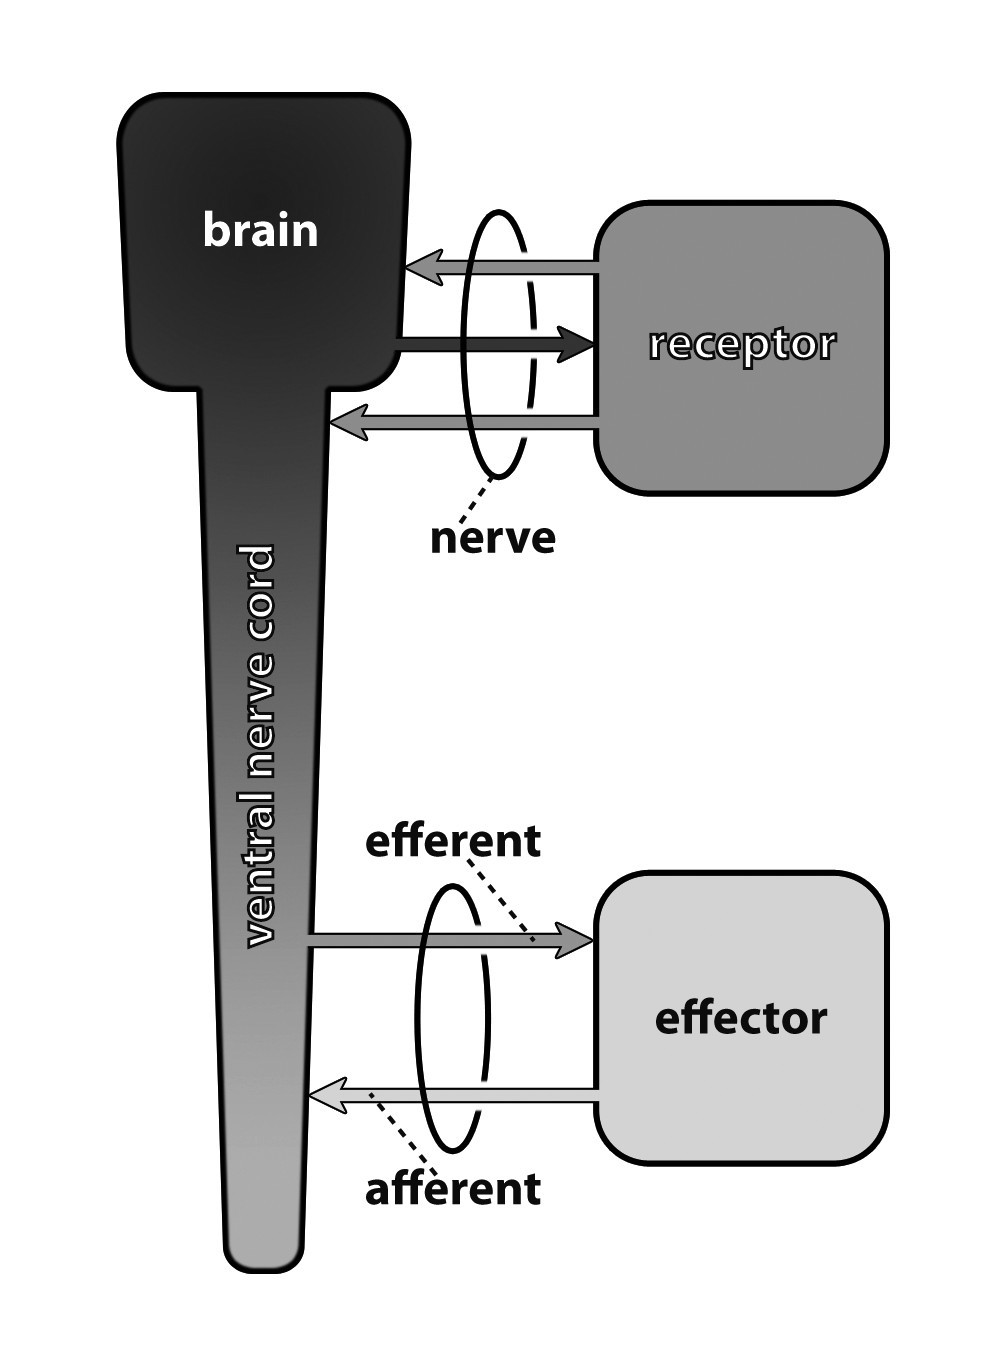 Invertebrate Neurophylogeny Suggested Terms And Definitions For A 1996 Lowe 170 Basic Boat Wiring Diagram Figure 14